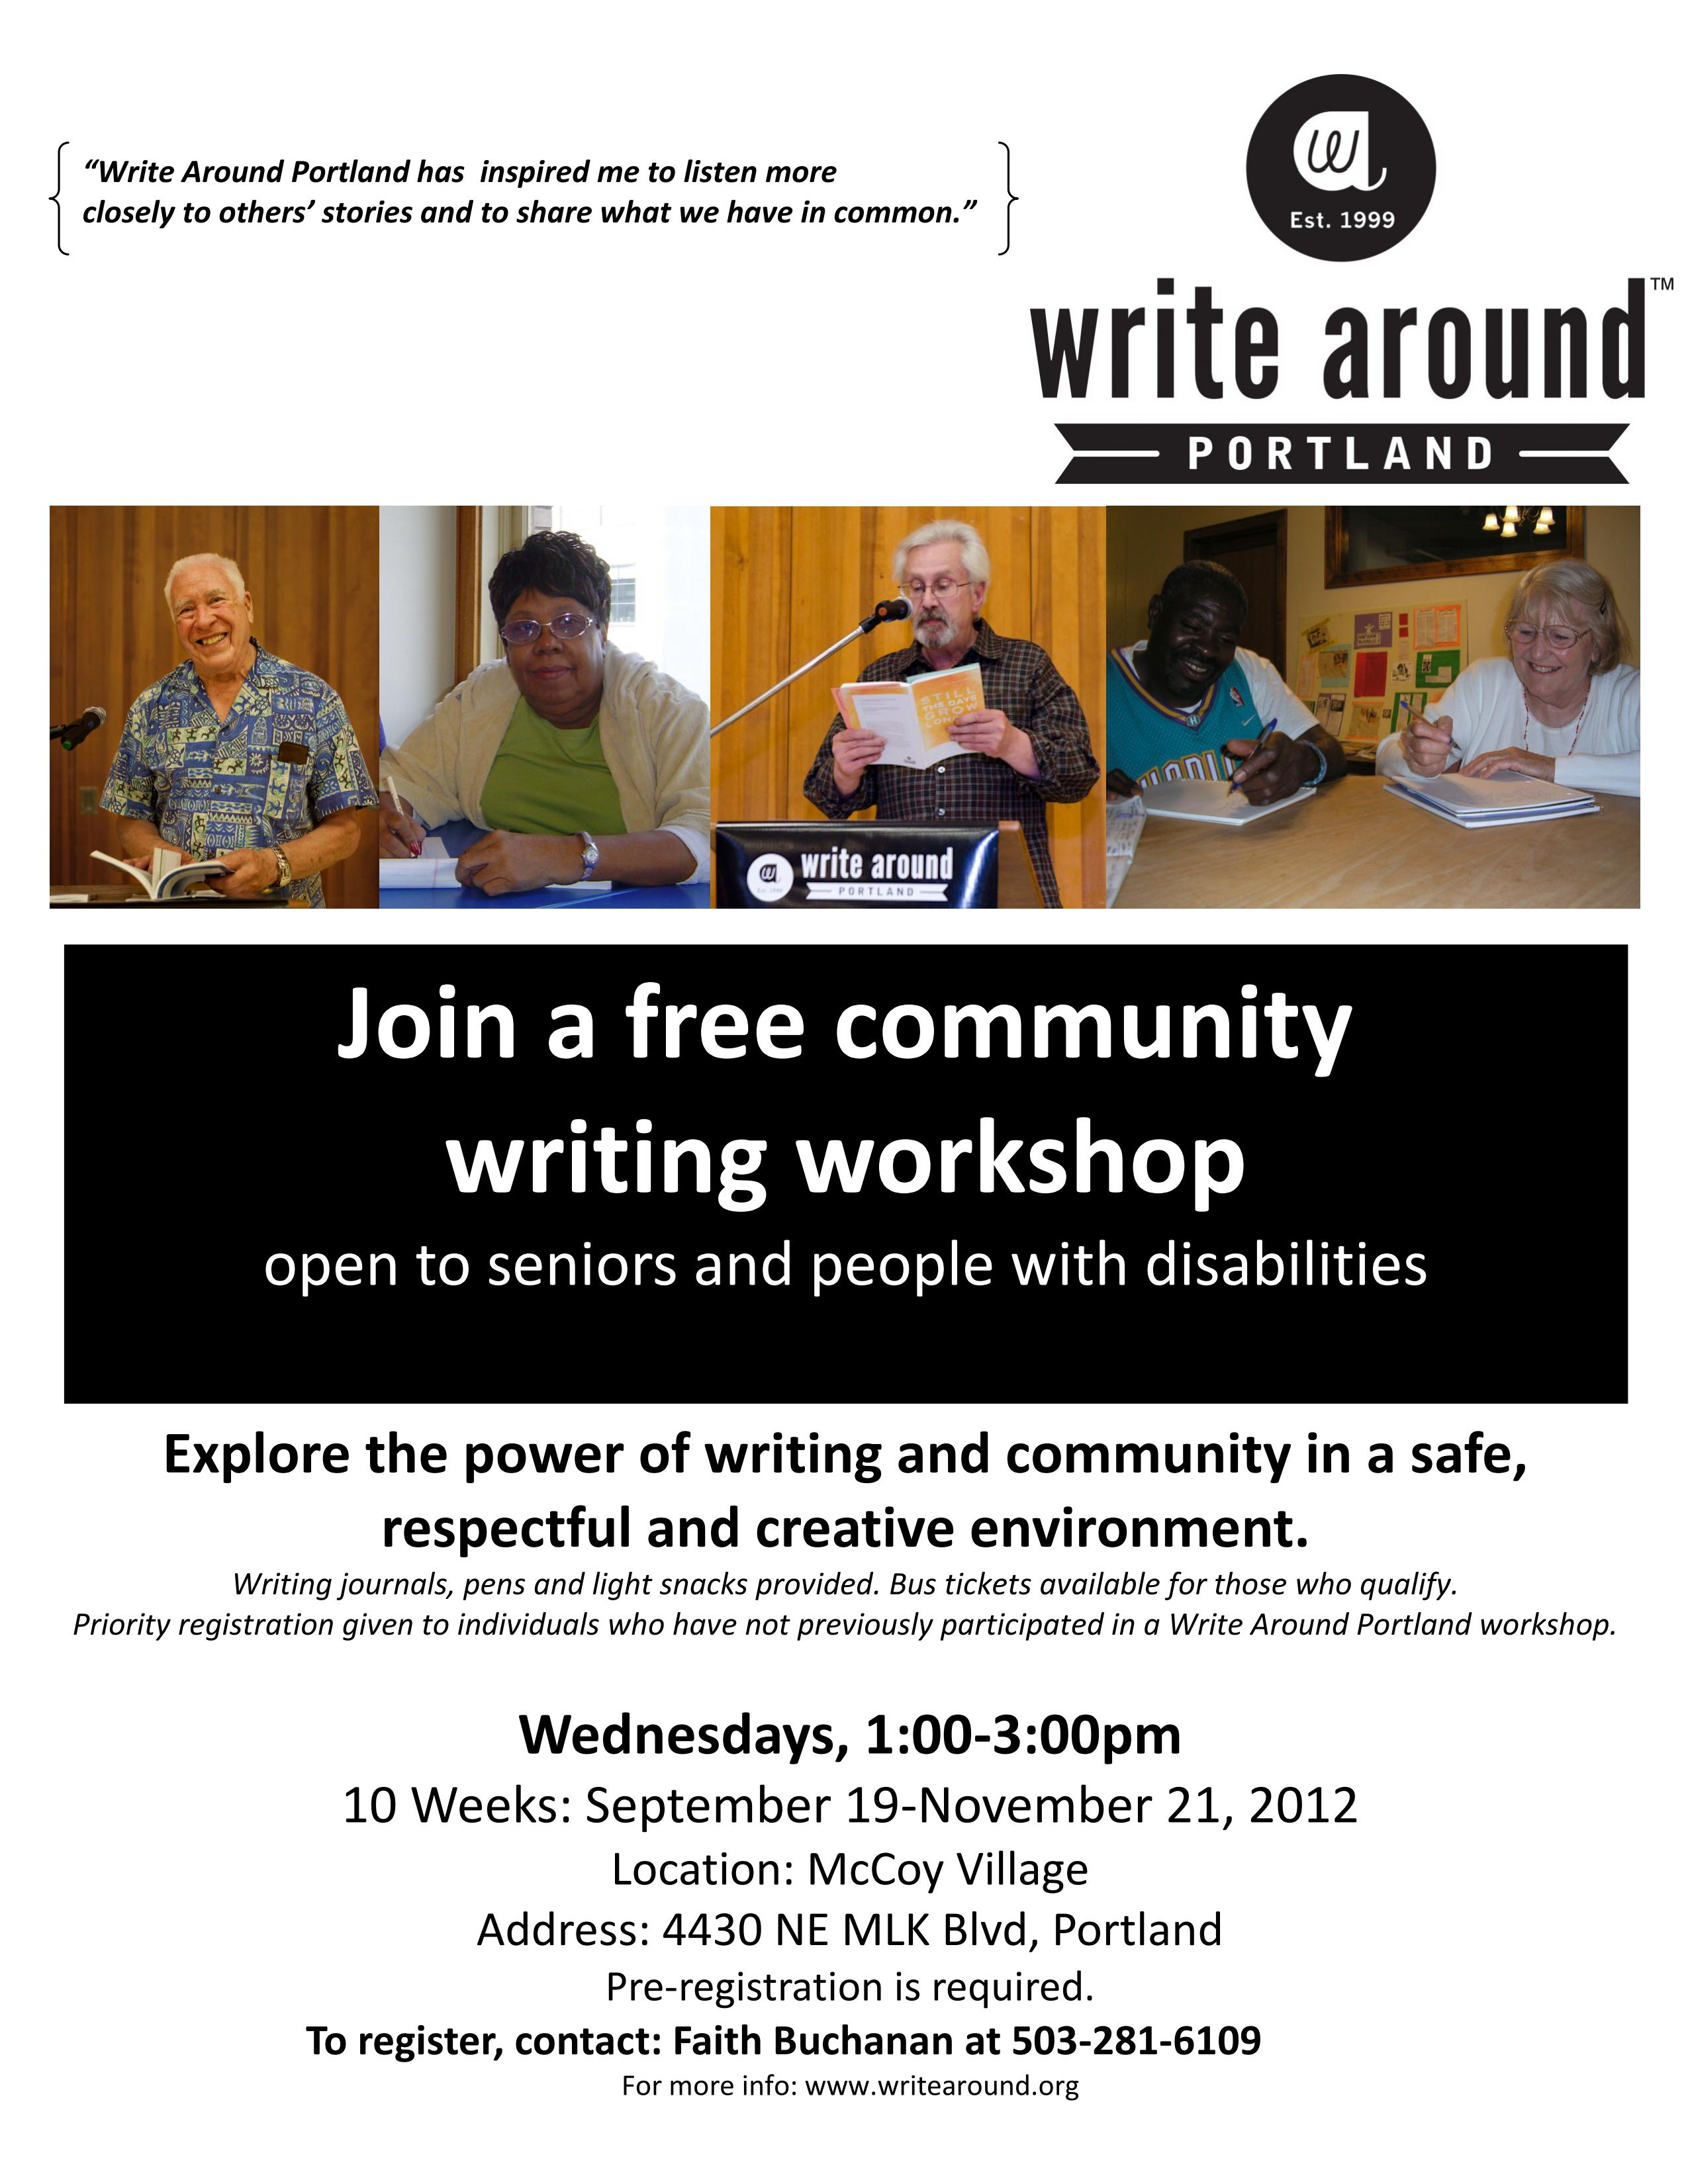 Prompt Writing Workshop by Write Around Portland